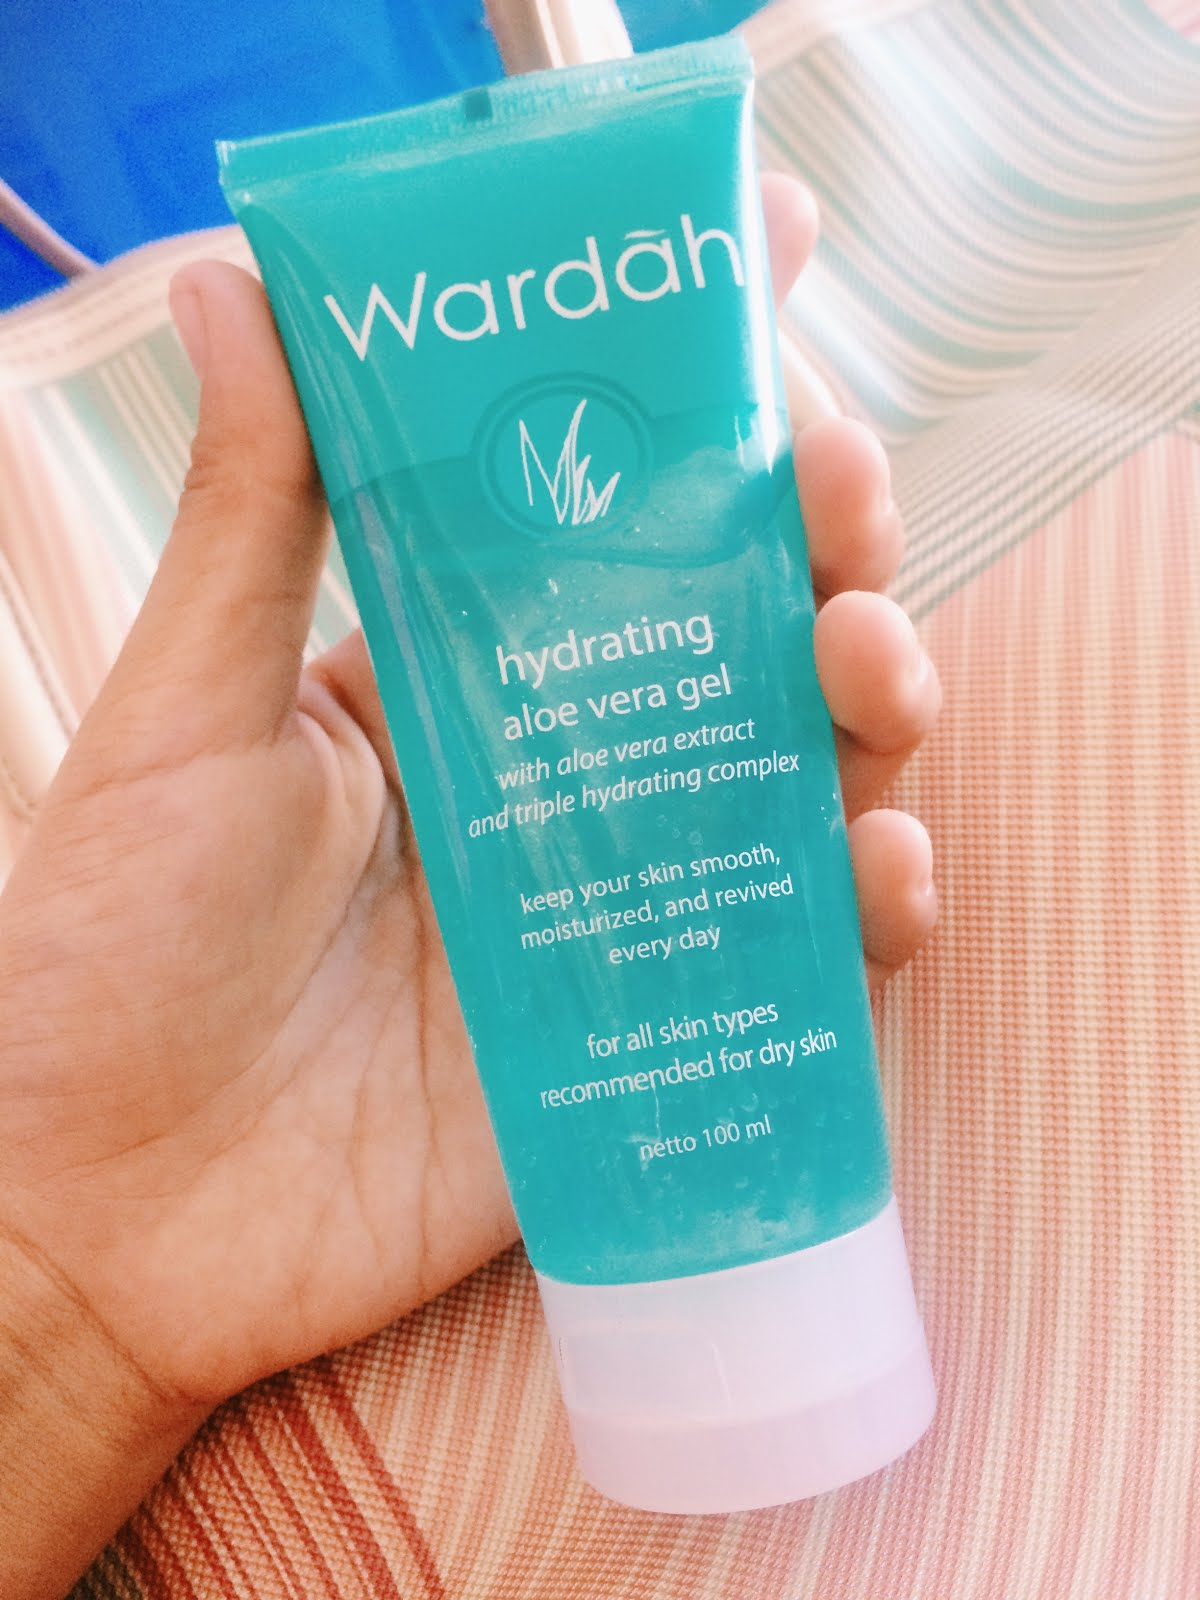 Reviews Wardah Hydrating Aloe Vera Gel